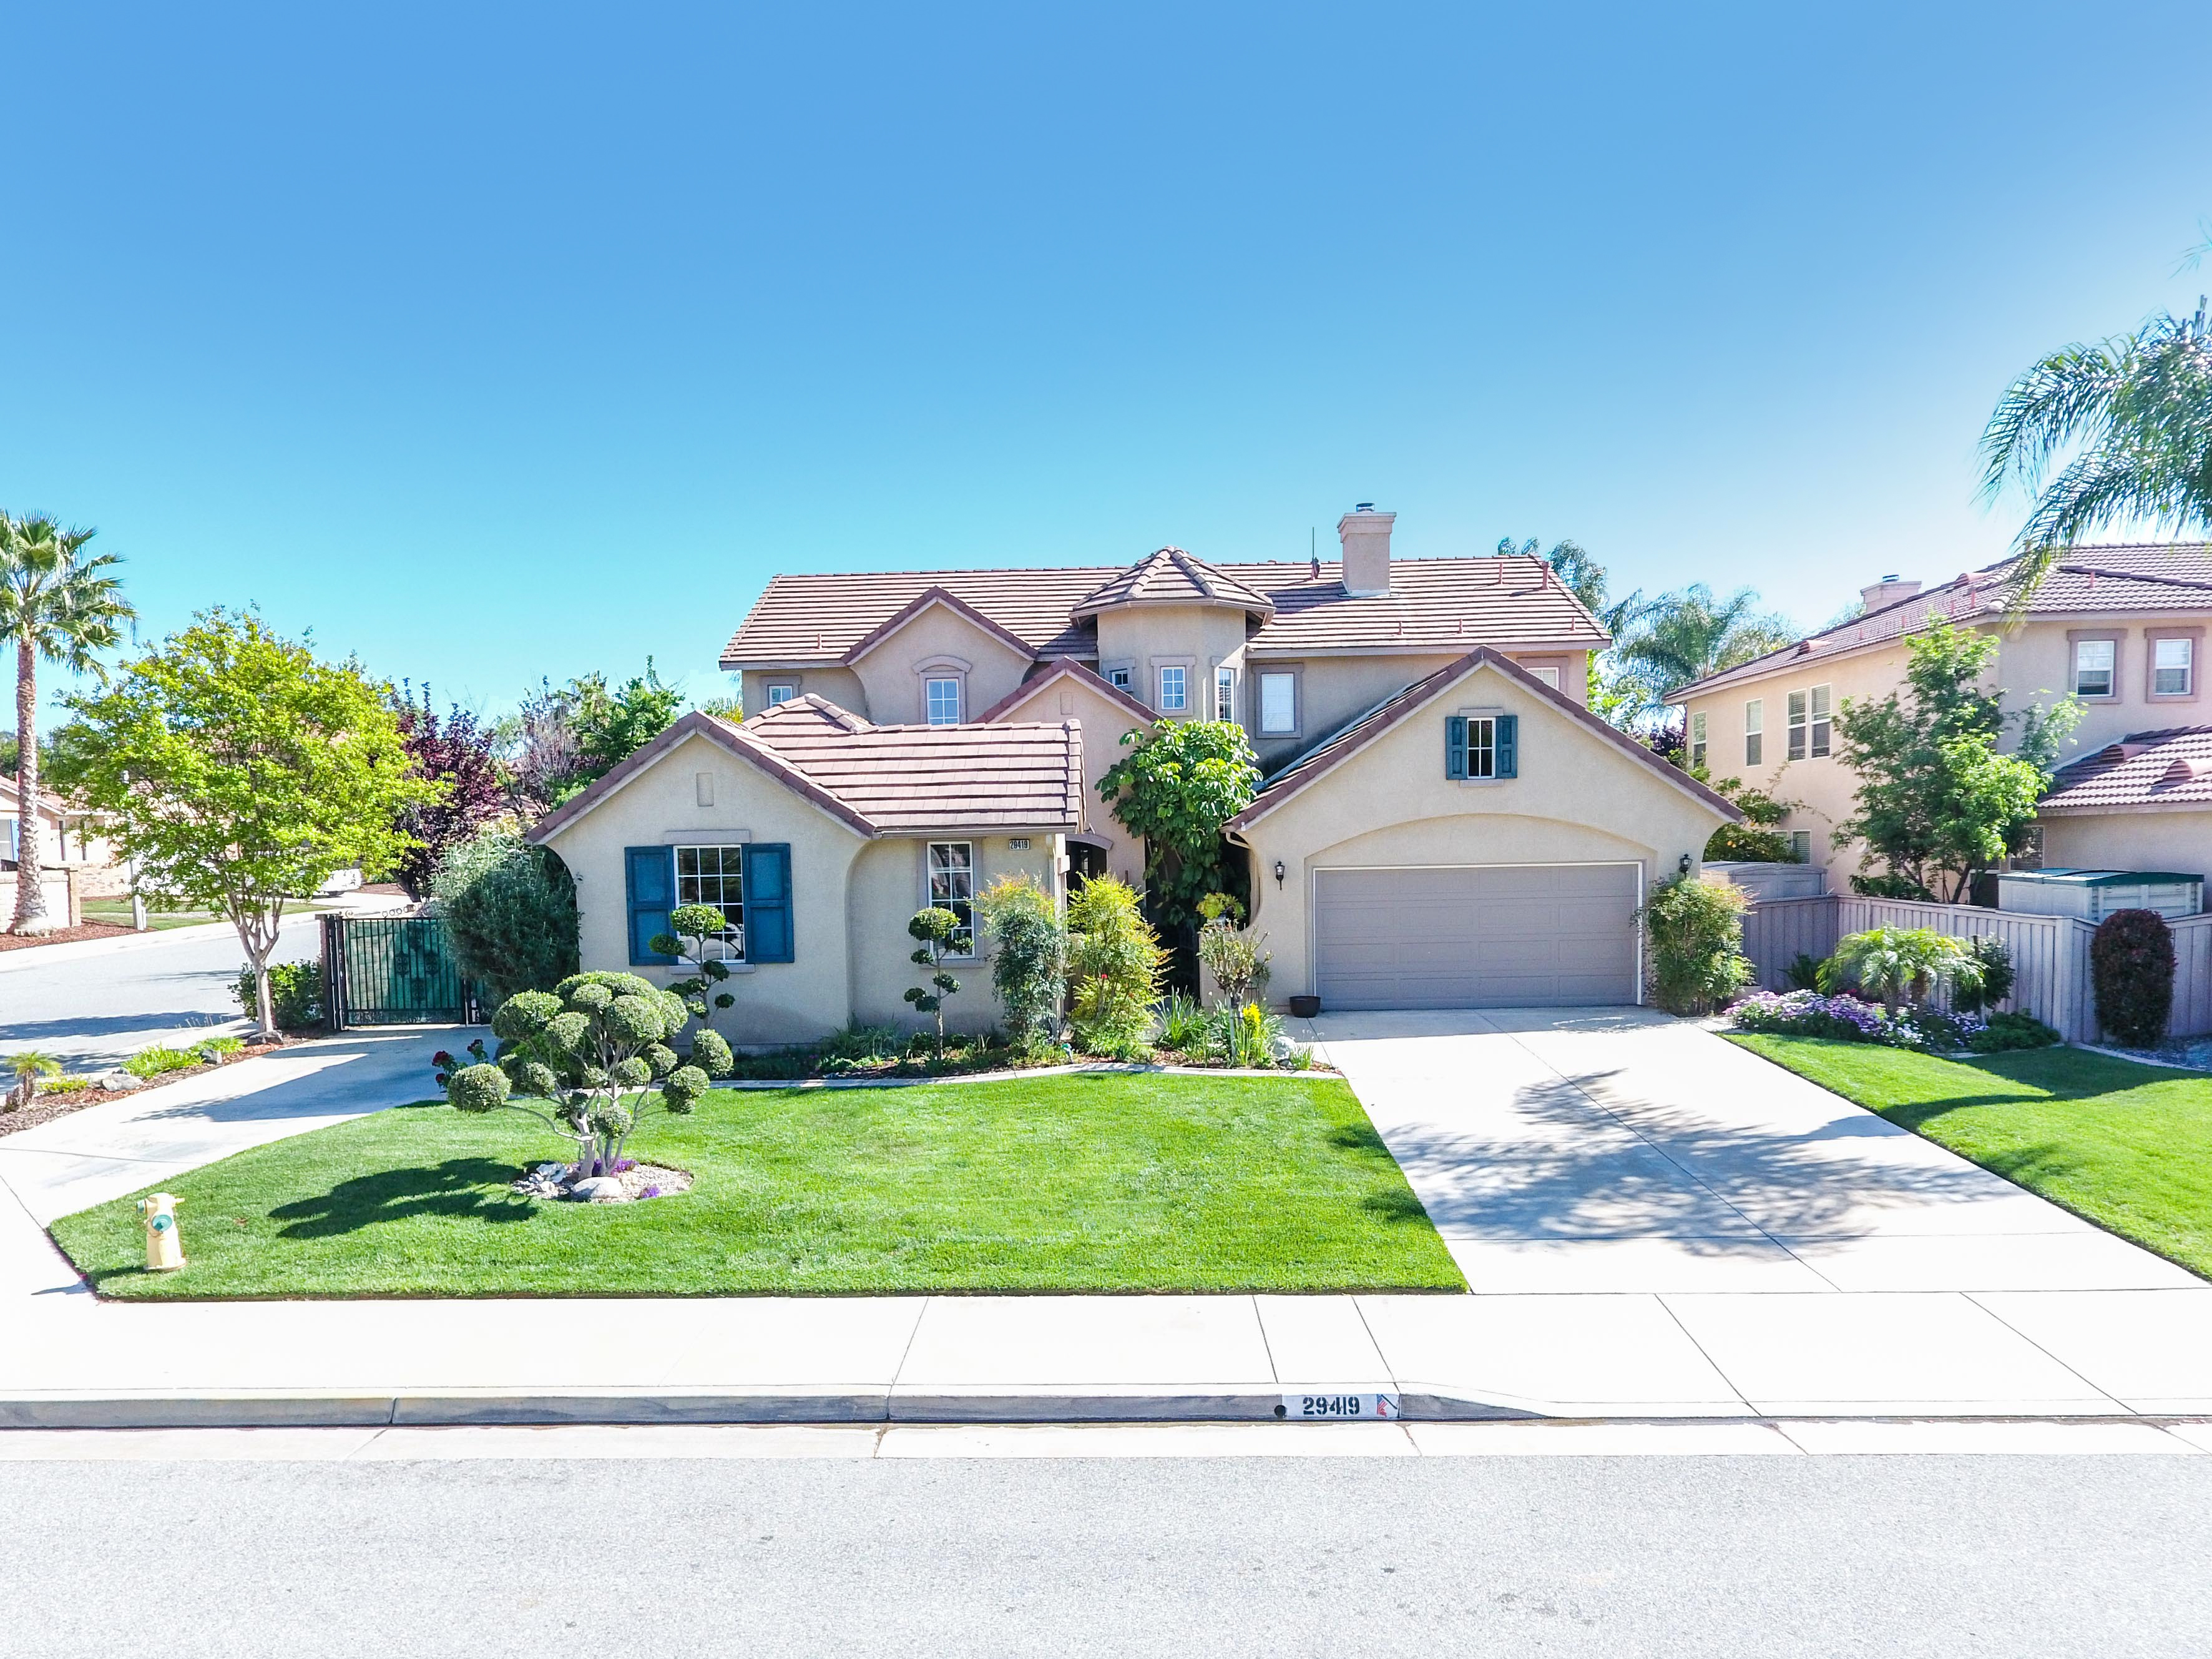 29419 Pebble Beach Dr-ext-1